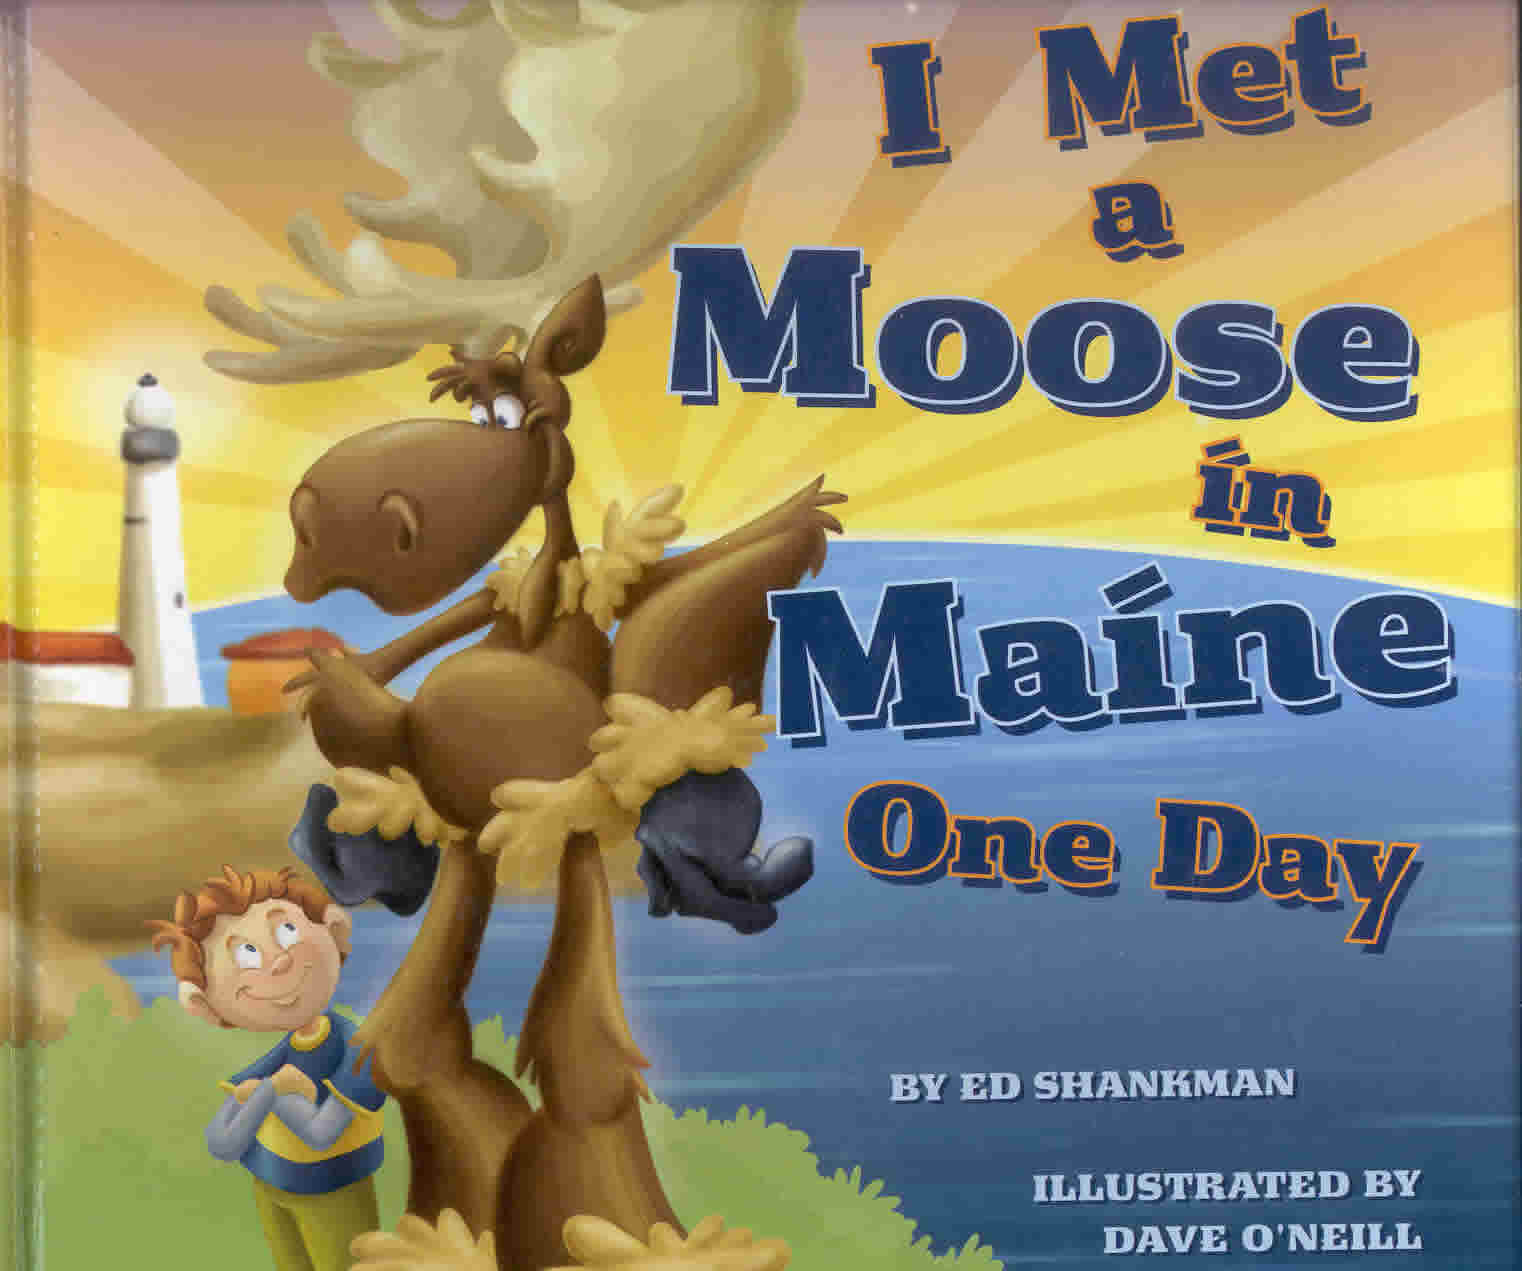 Image of the book cover I Met a Moose in Maine One Day